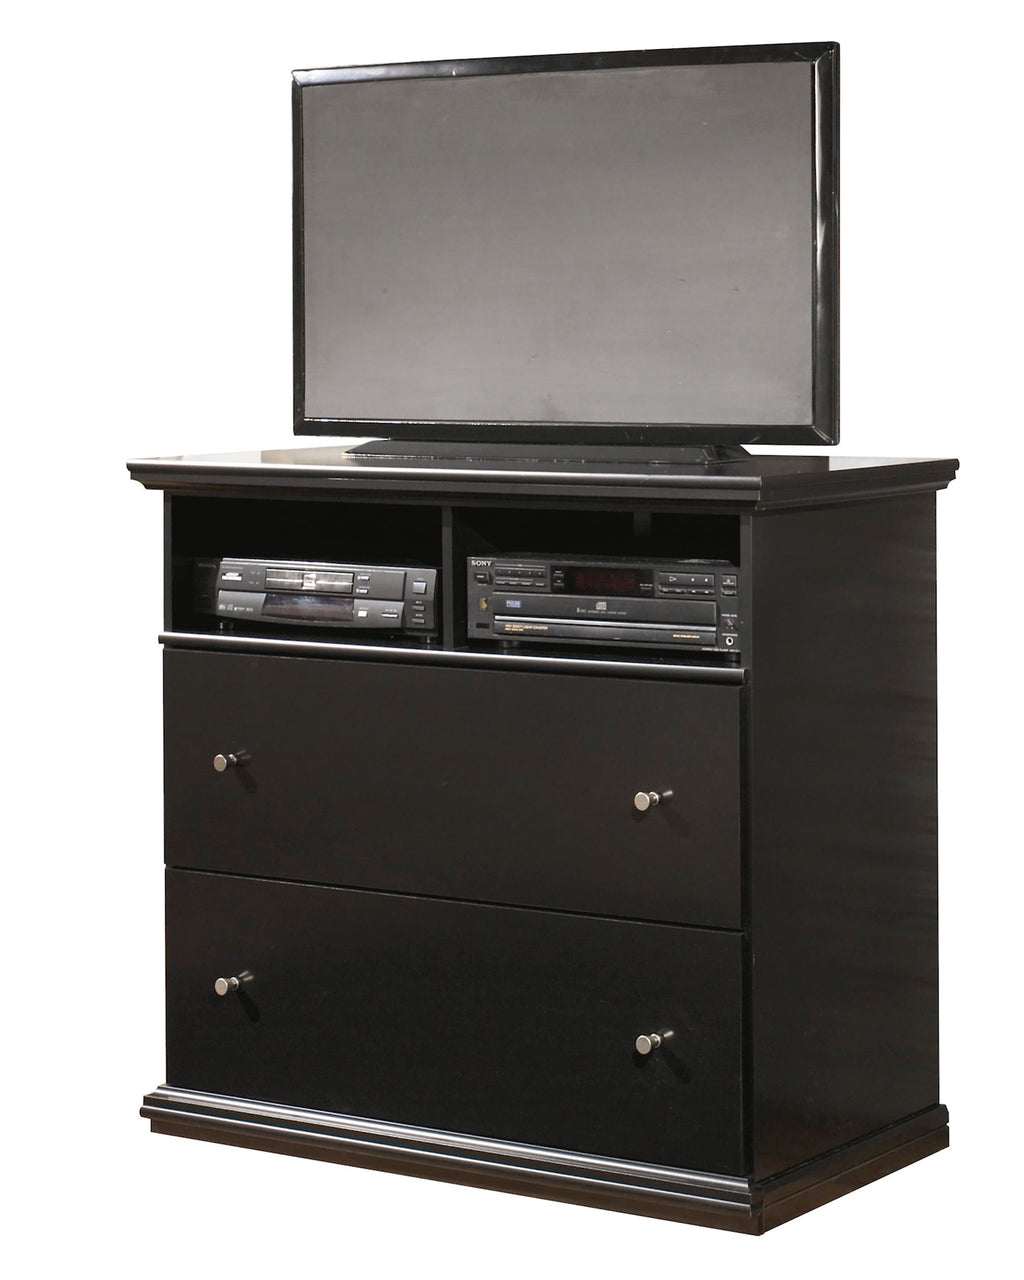 Ashley Maribel media chest in Black - The Furniture Space.